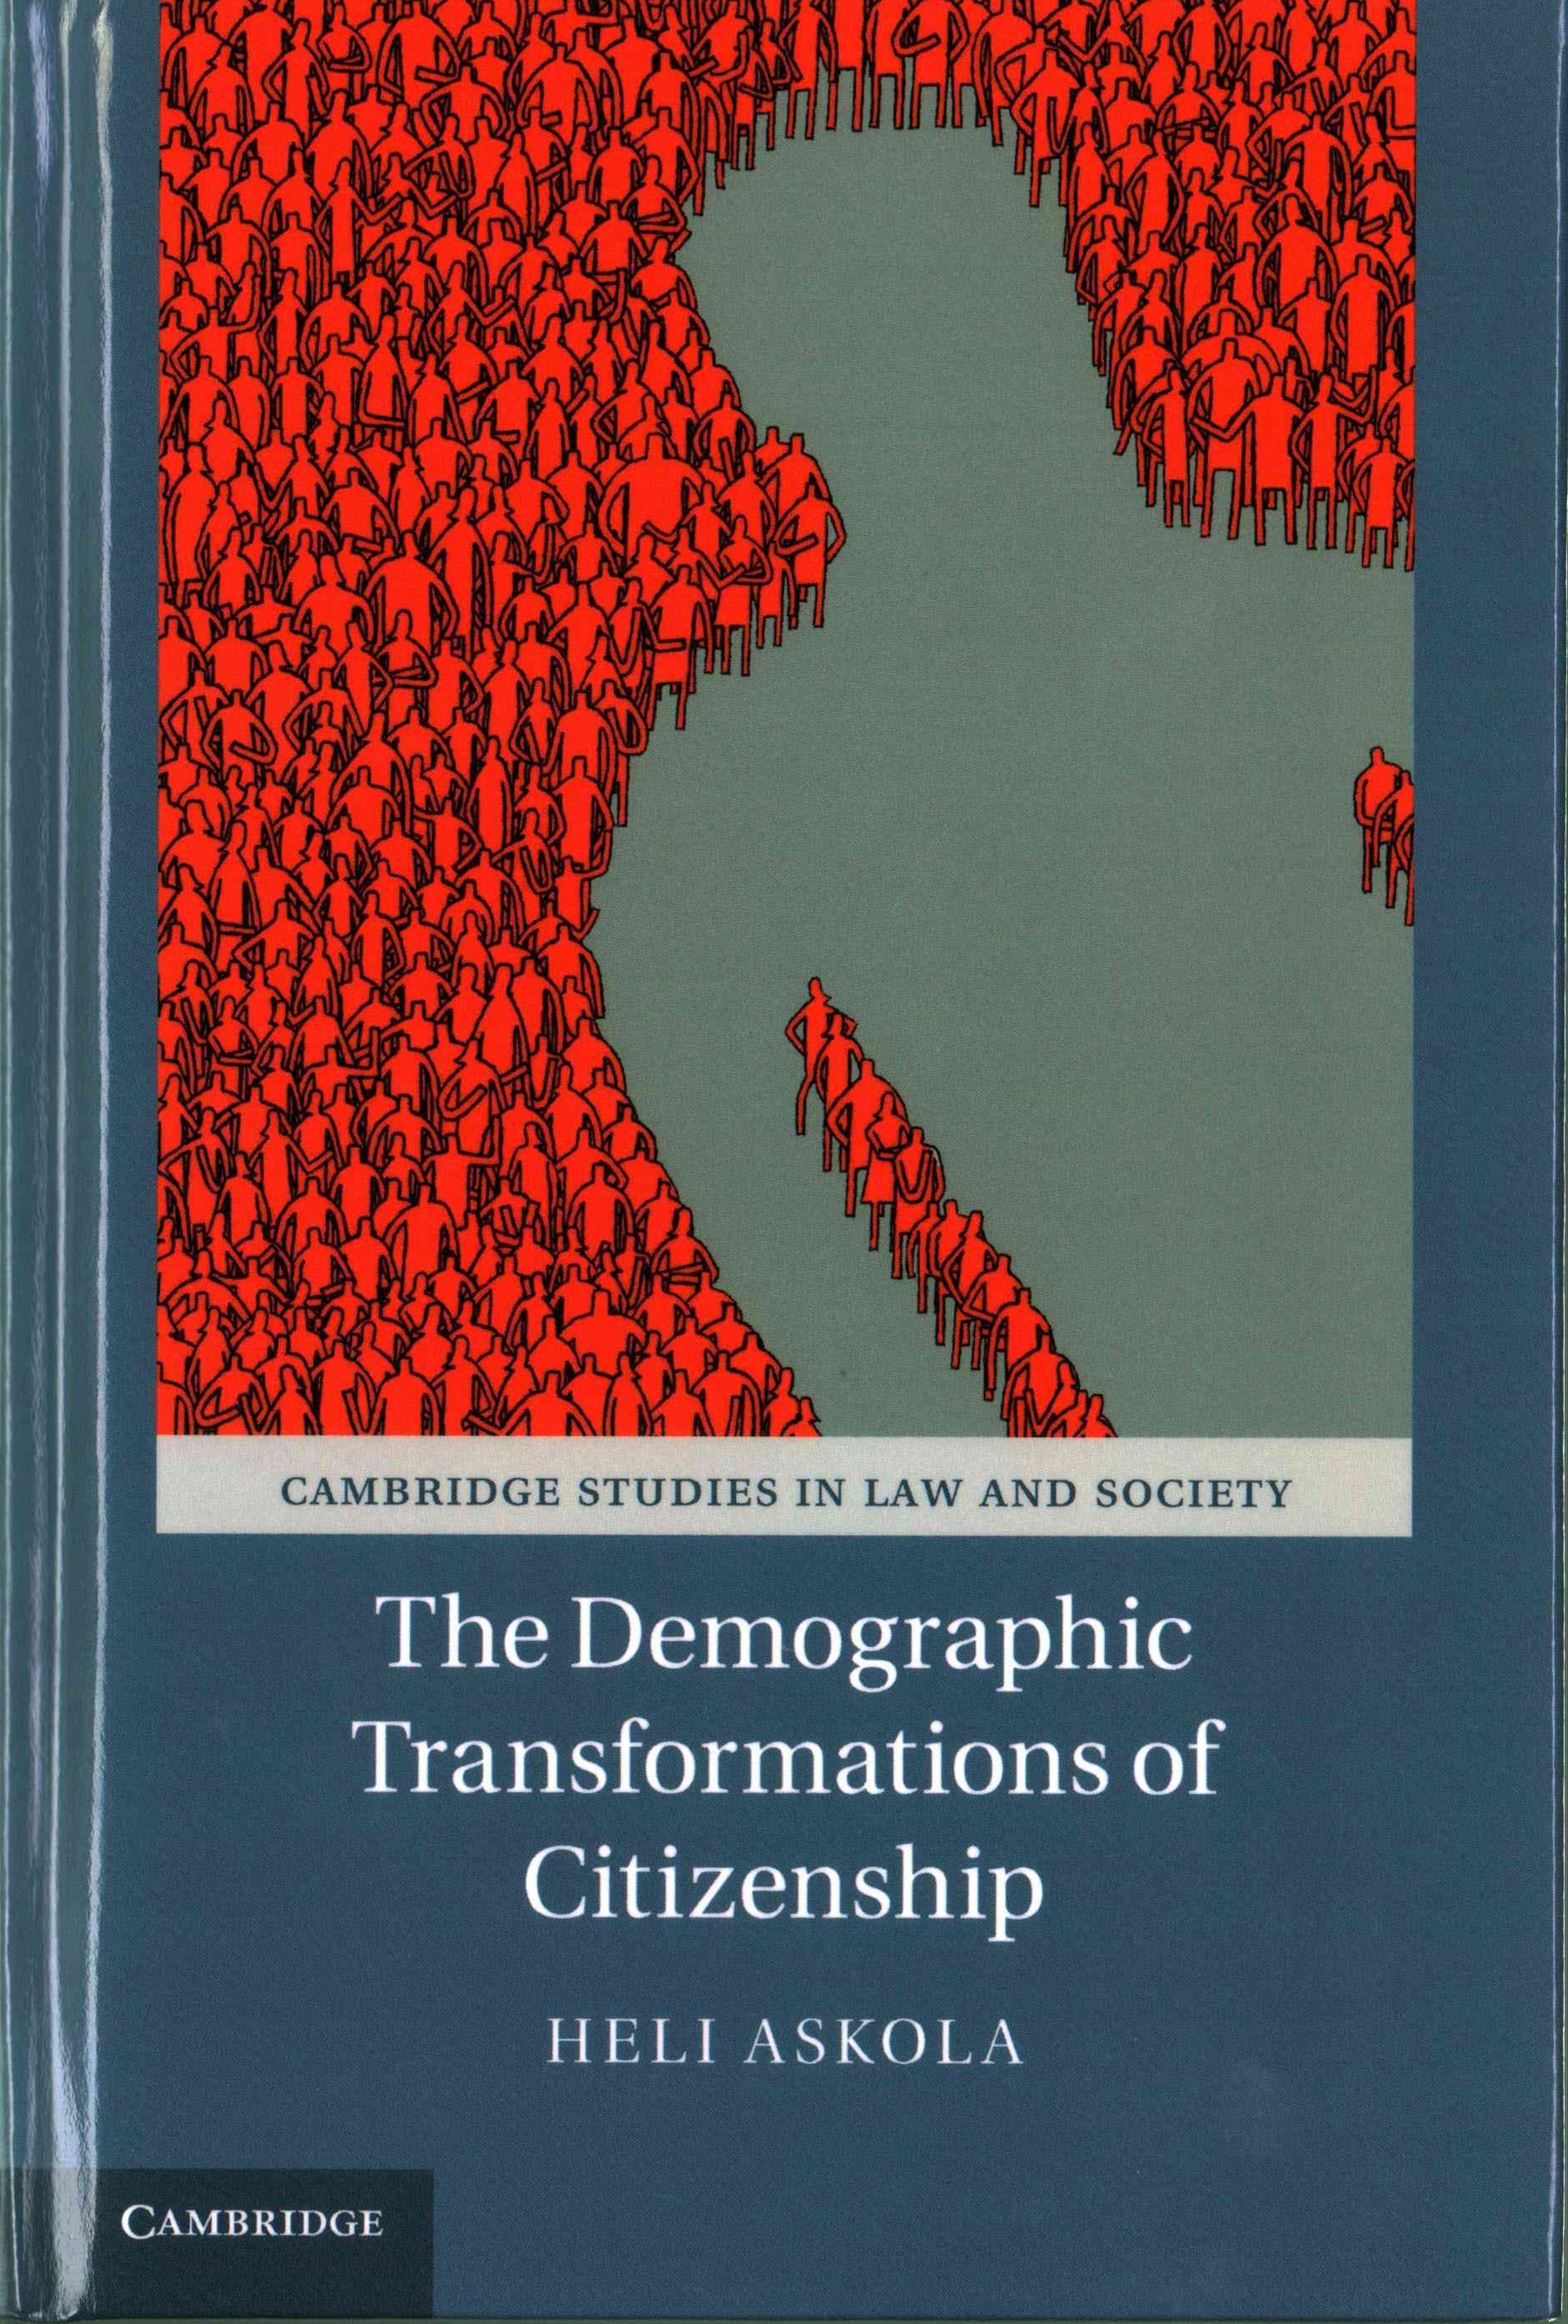 The Demographic Transformations of Citizenship